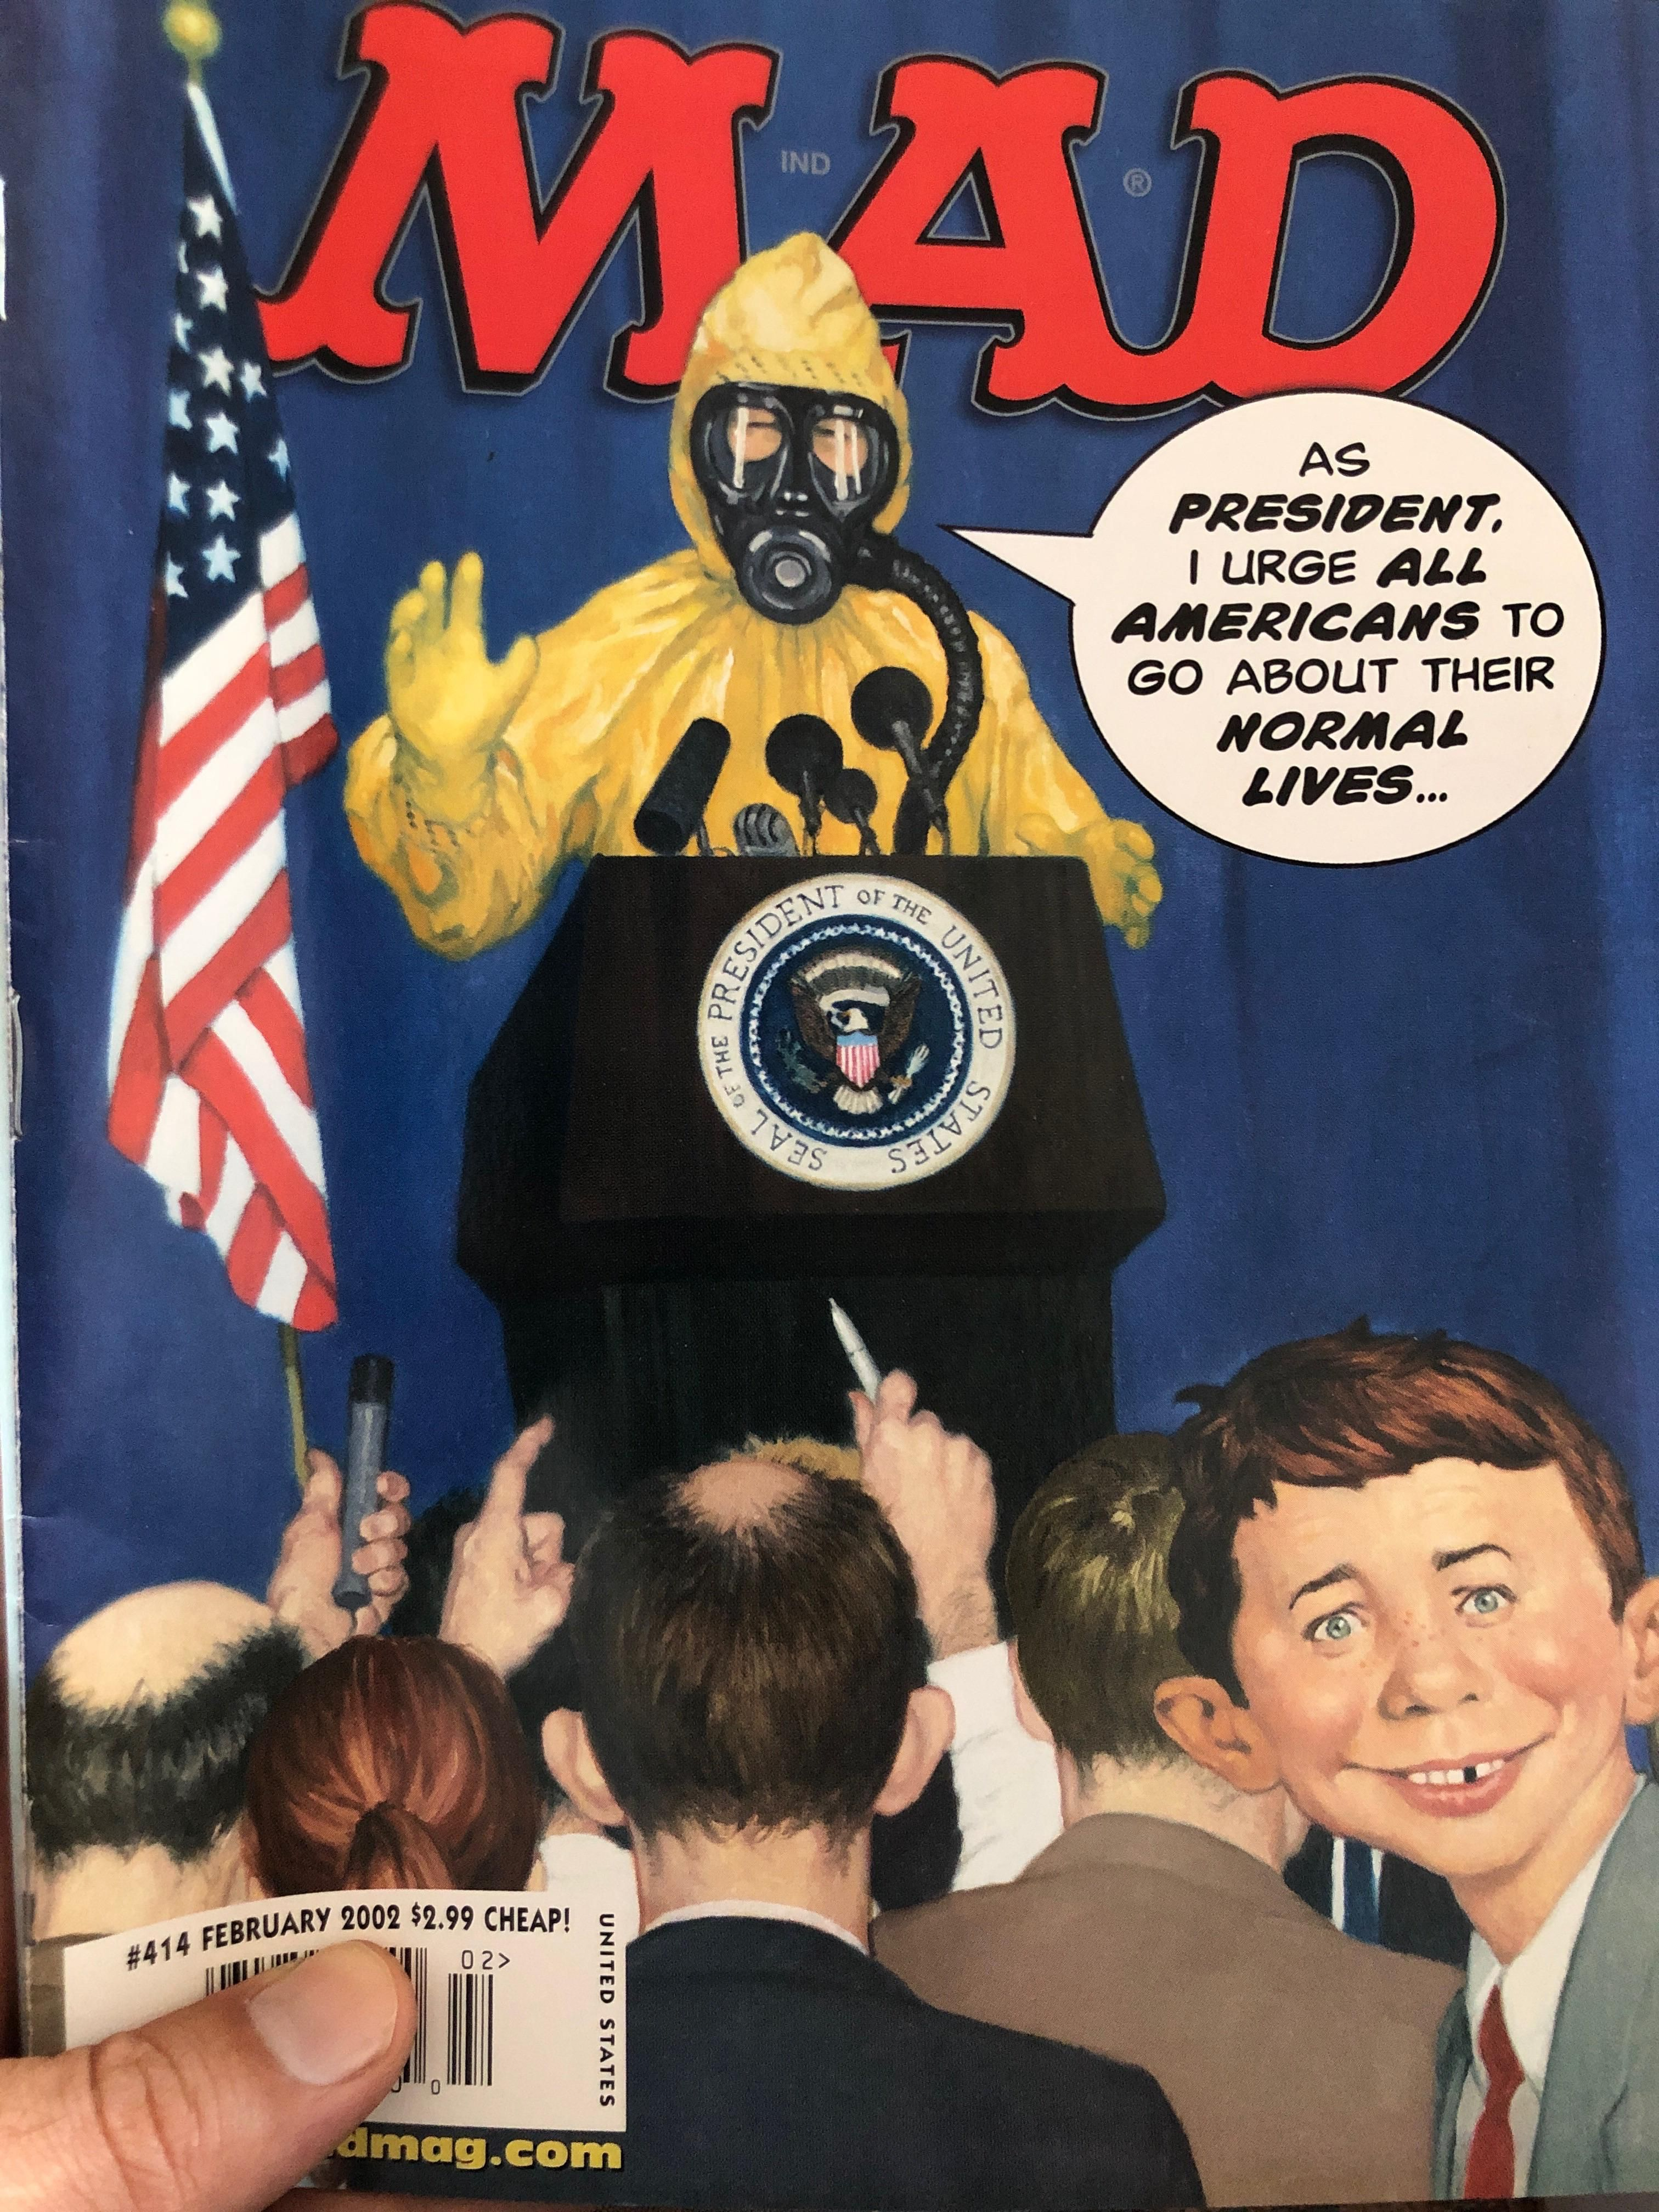 This MAD Magazine cover from Feb. 2002